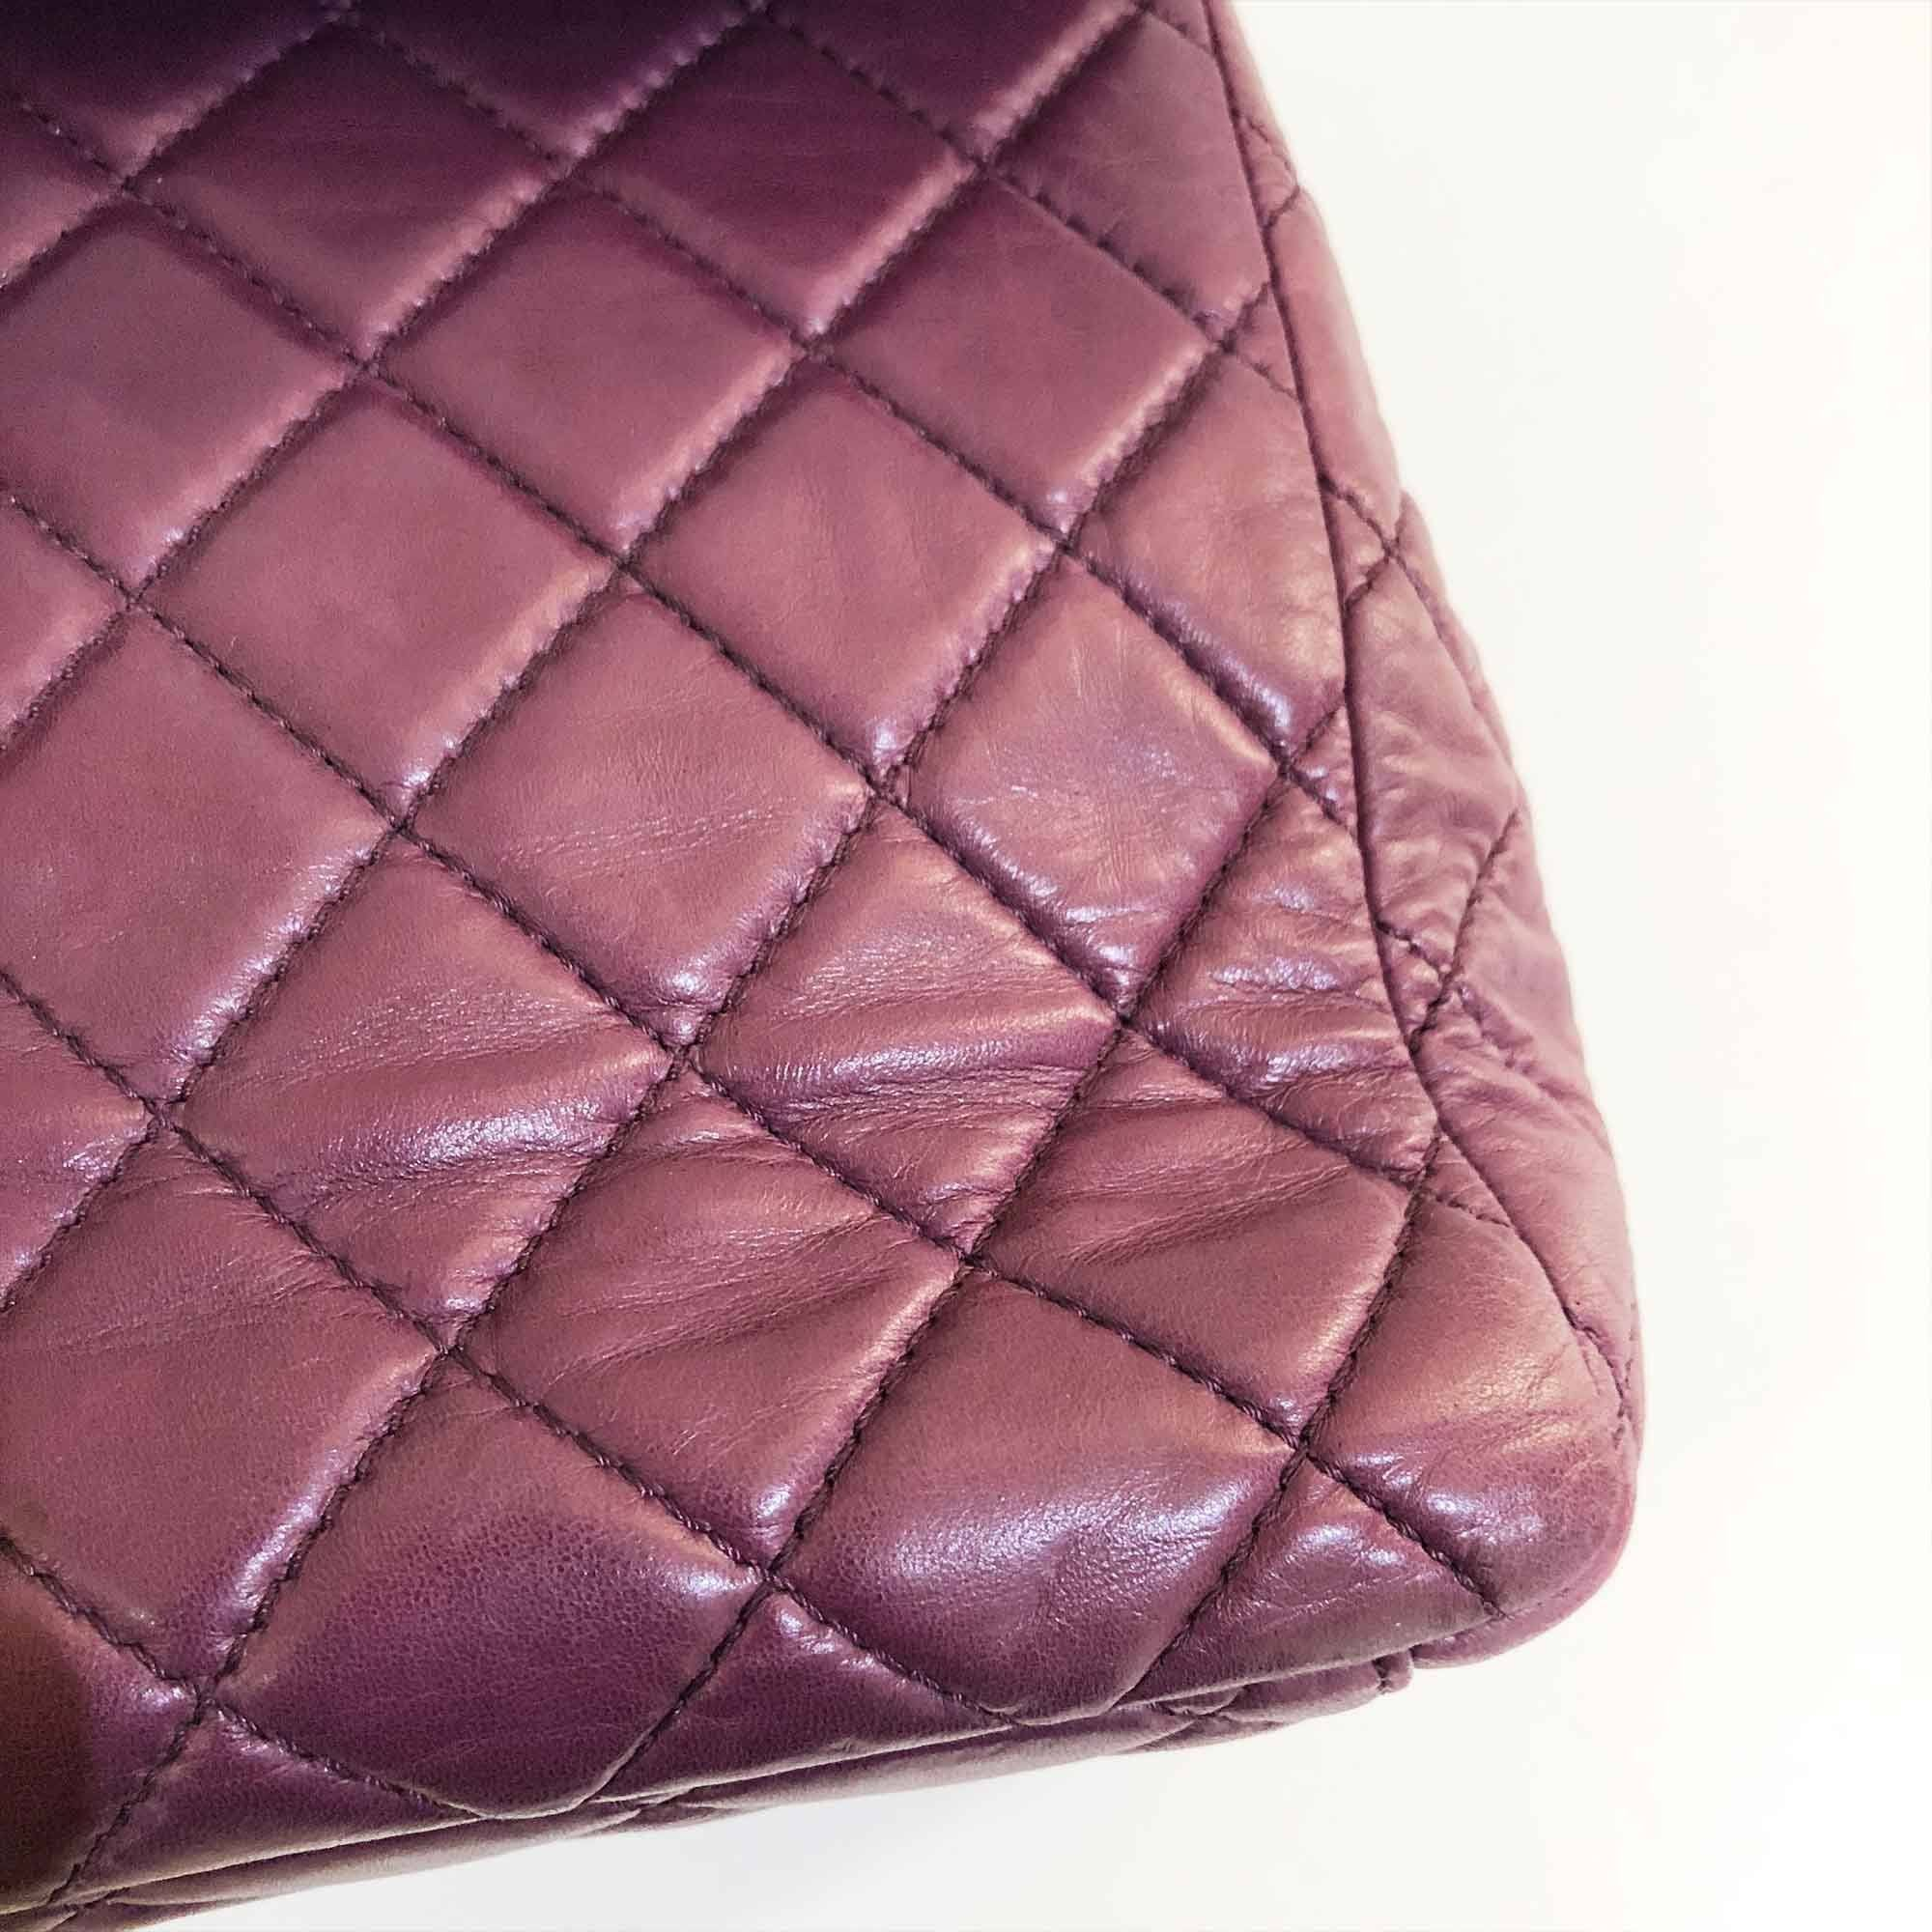 Chanel Lambskin Leather Purple Large Flap Blag